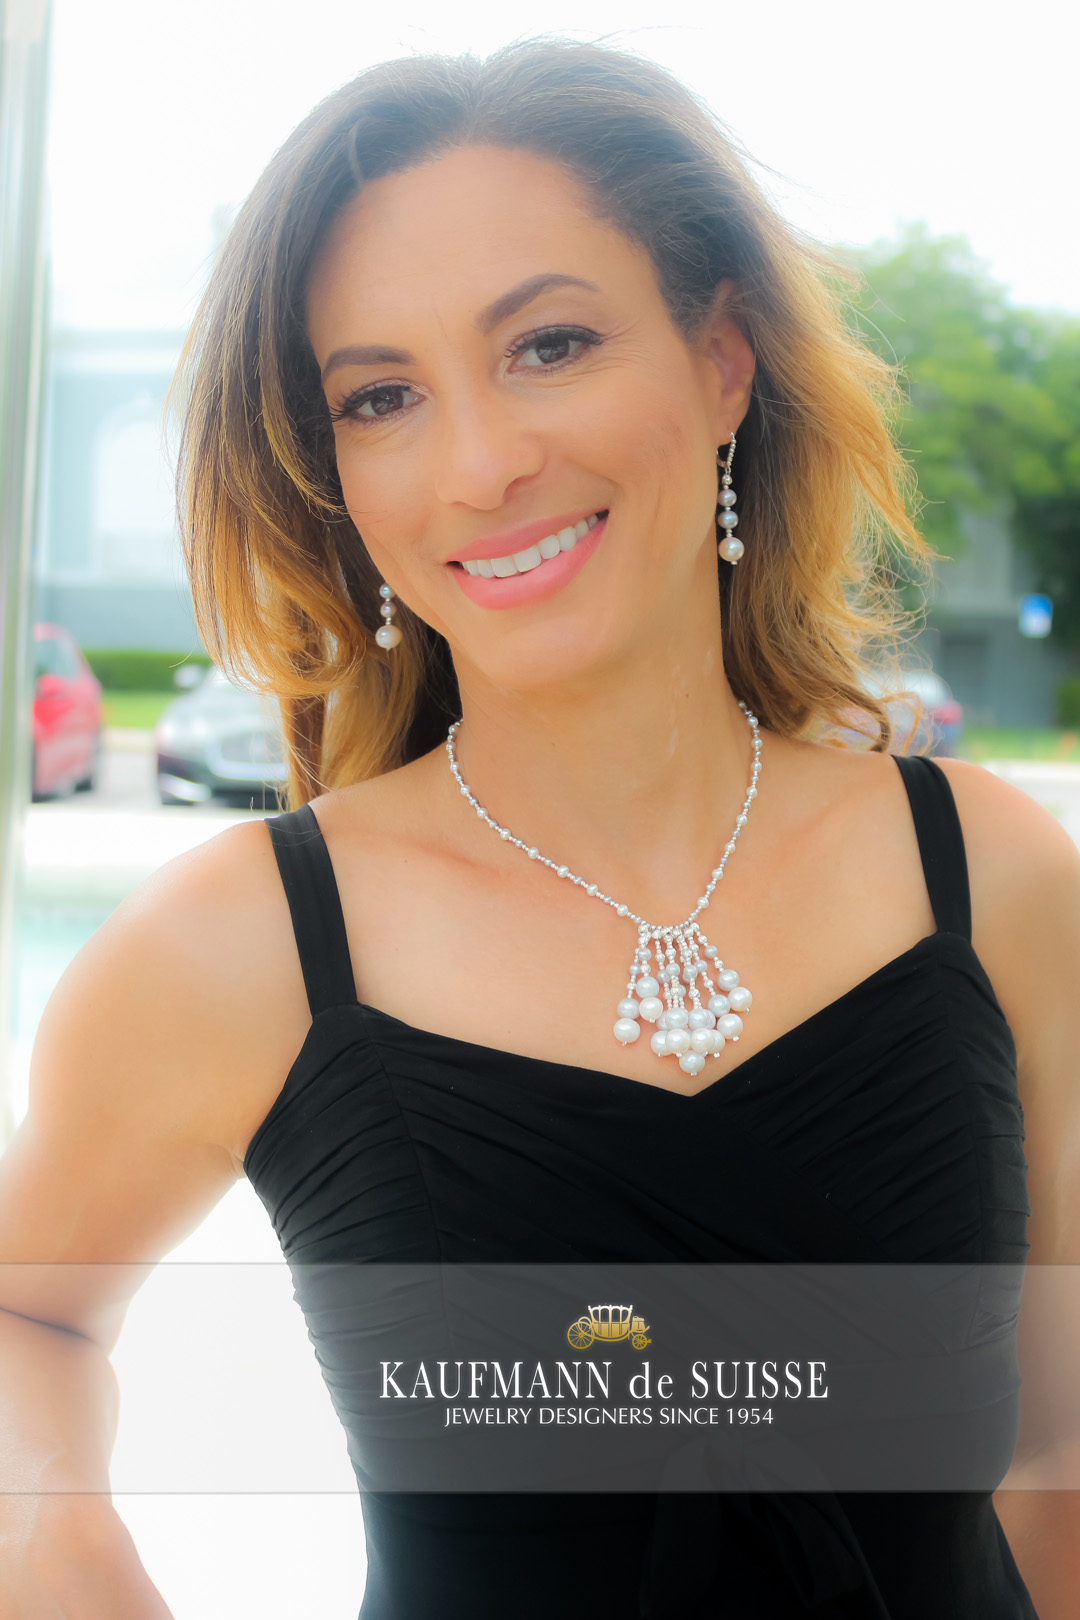 The Pearl Tassel Necklace with Gray and White Freshwater Pearls